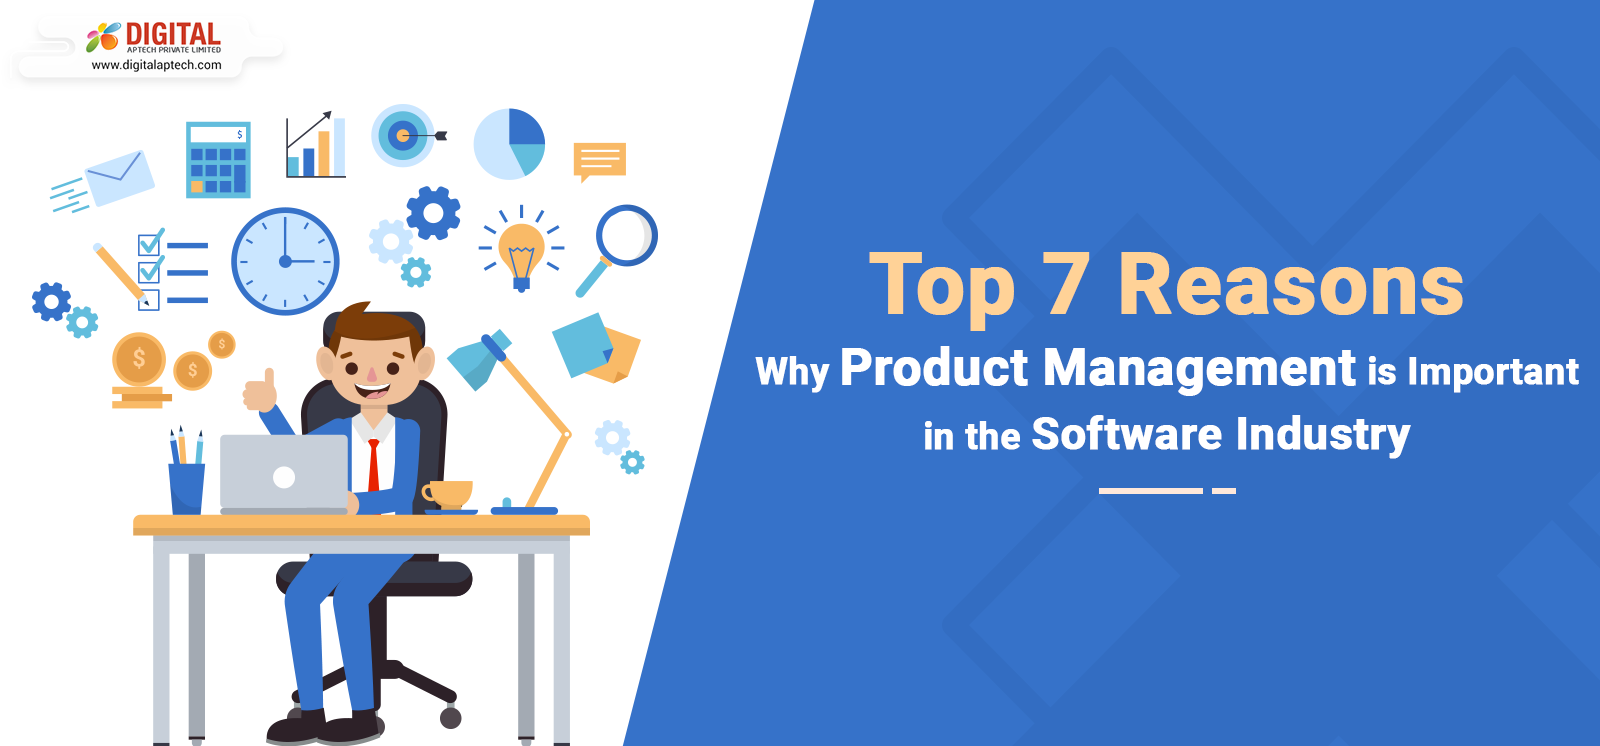 Top 7 Reasons  Why Product Management is Important in the Software Industry